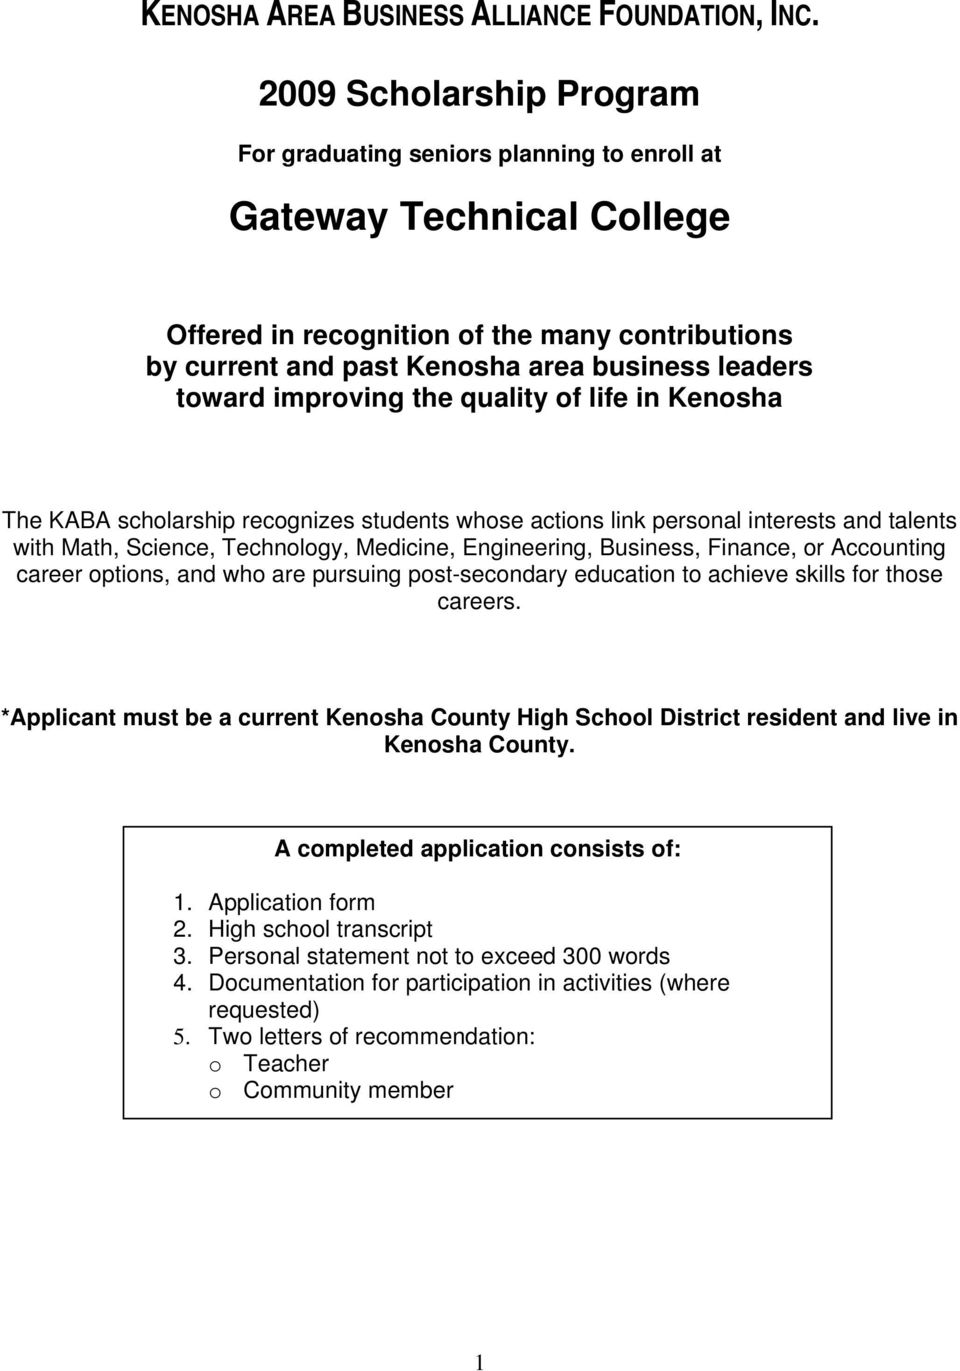 career options, and who are pursuing post-secondary education to achieve skills for those careers. *Applicant must be a current Kenosha County High School District resident and live in Kenosha County.